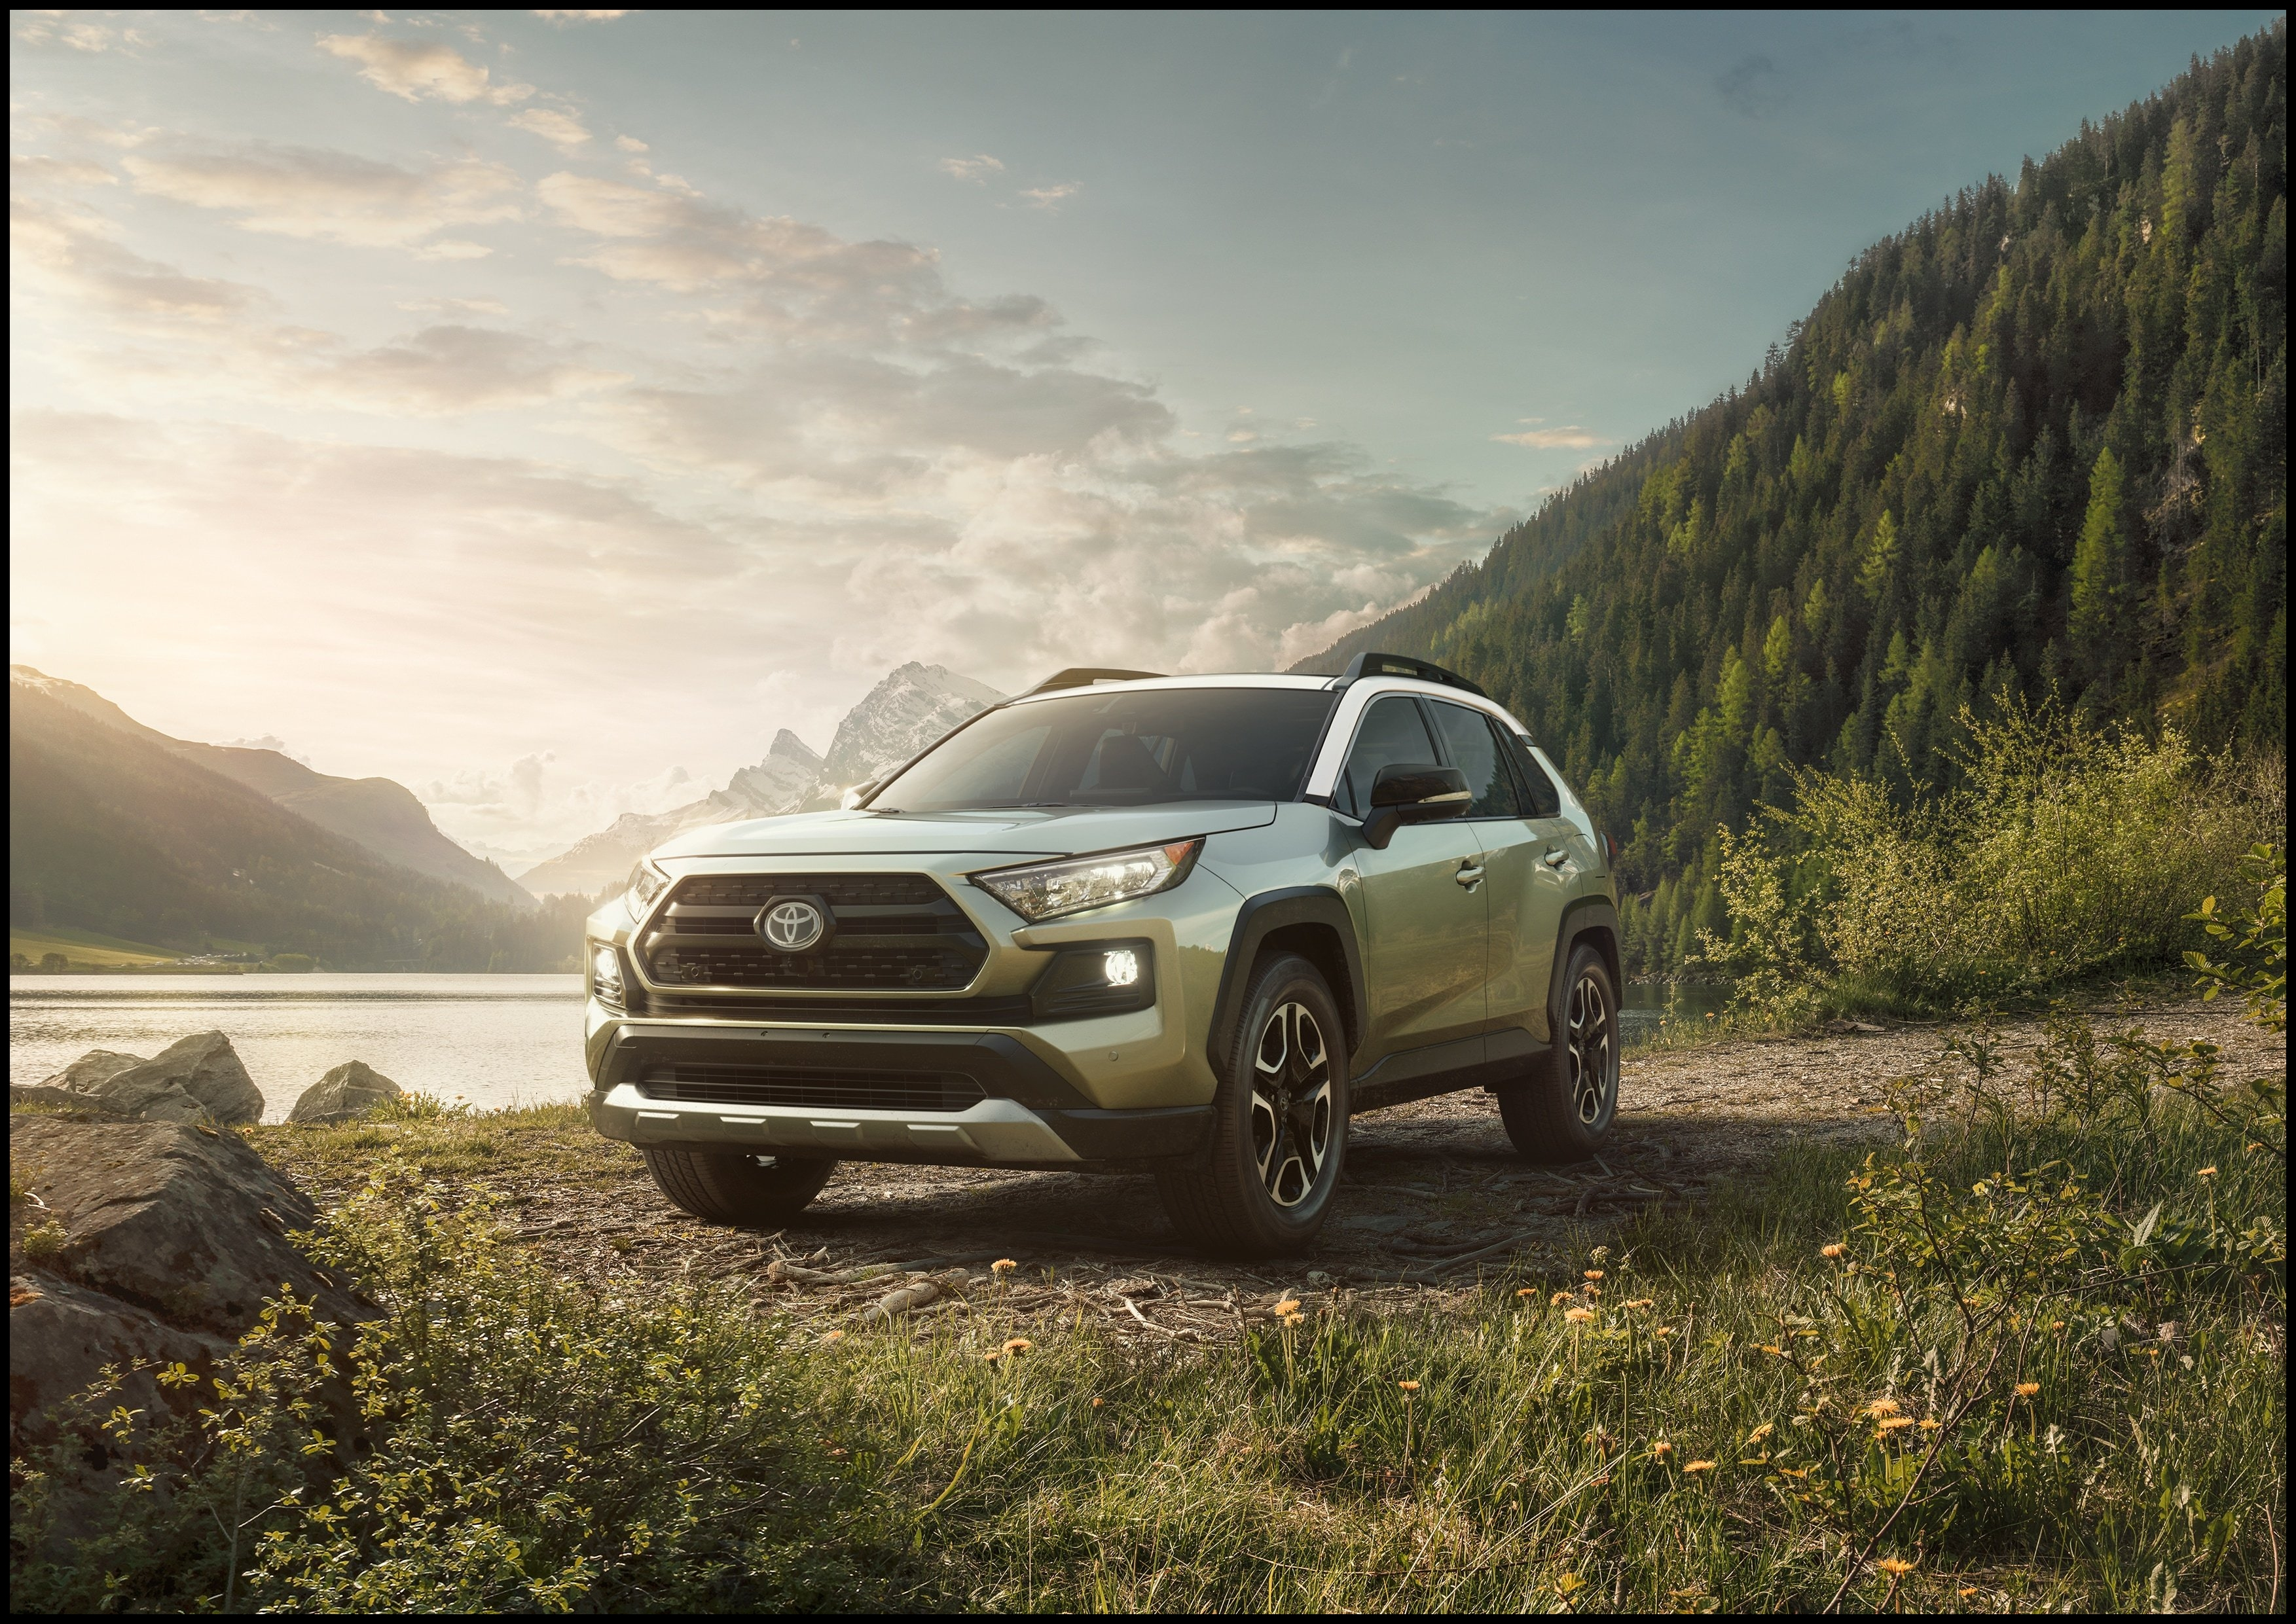 All New 2019 Toyota RAV4 Wins pact SUV of Texas at 2018 Texas Truck Rodeo